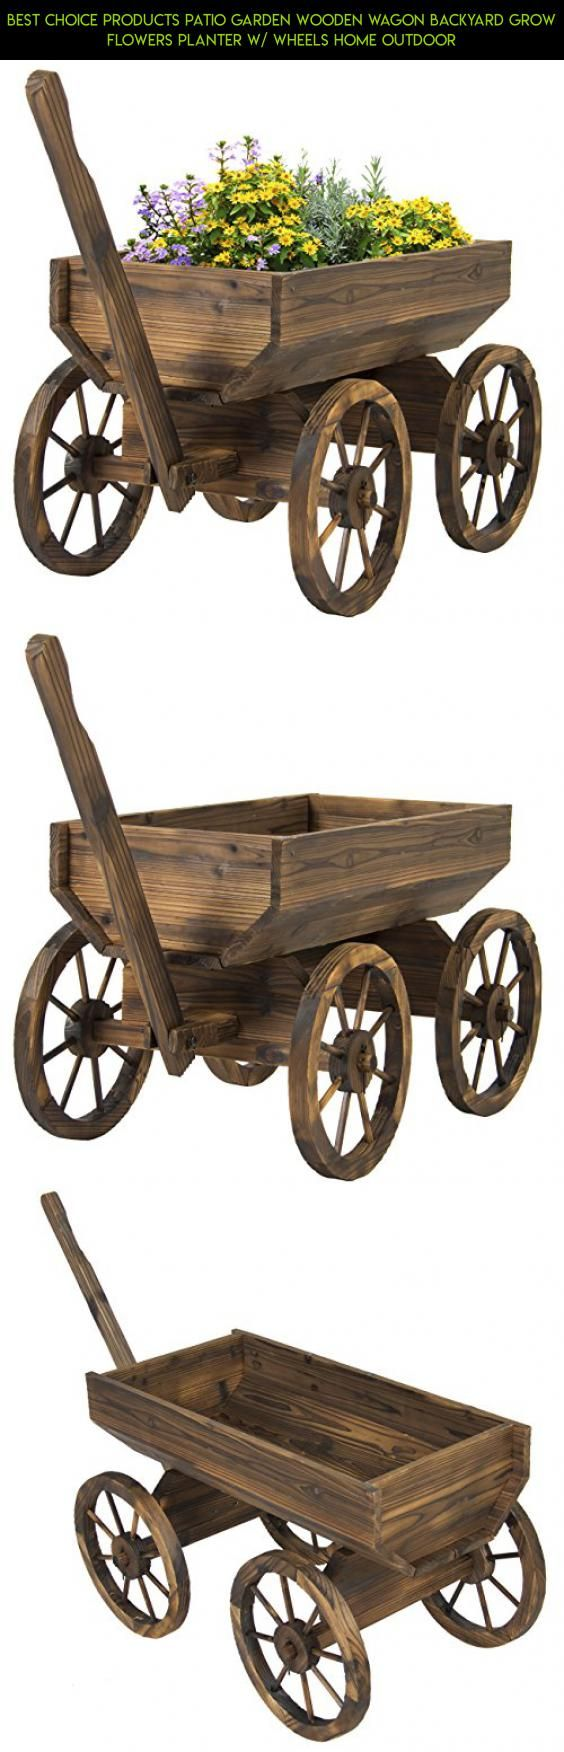 Best Choice Products Patio Garden Wooden Wagon Backyard Grow Flowers Planter w/ Wheels Home Outdoor #plans #gadgets #decor #racing #rustic #shopping #kit #parts #fpv #technology #outdoor #tech #camera #products #drone